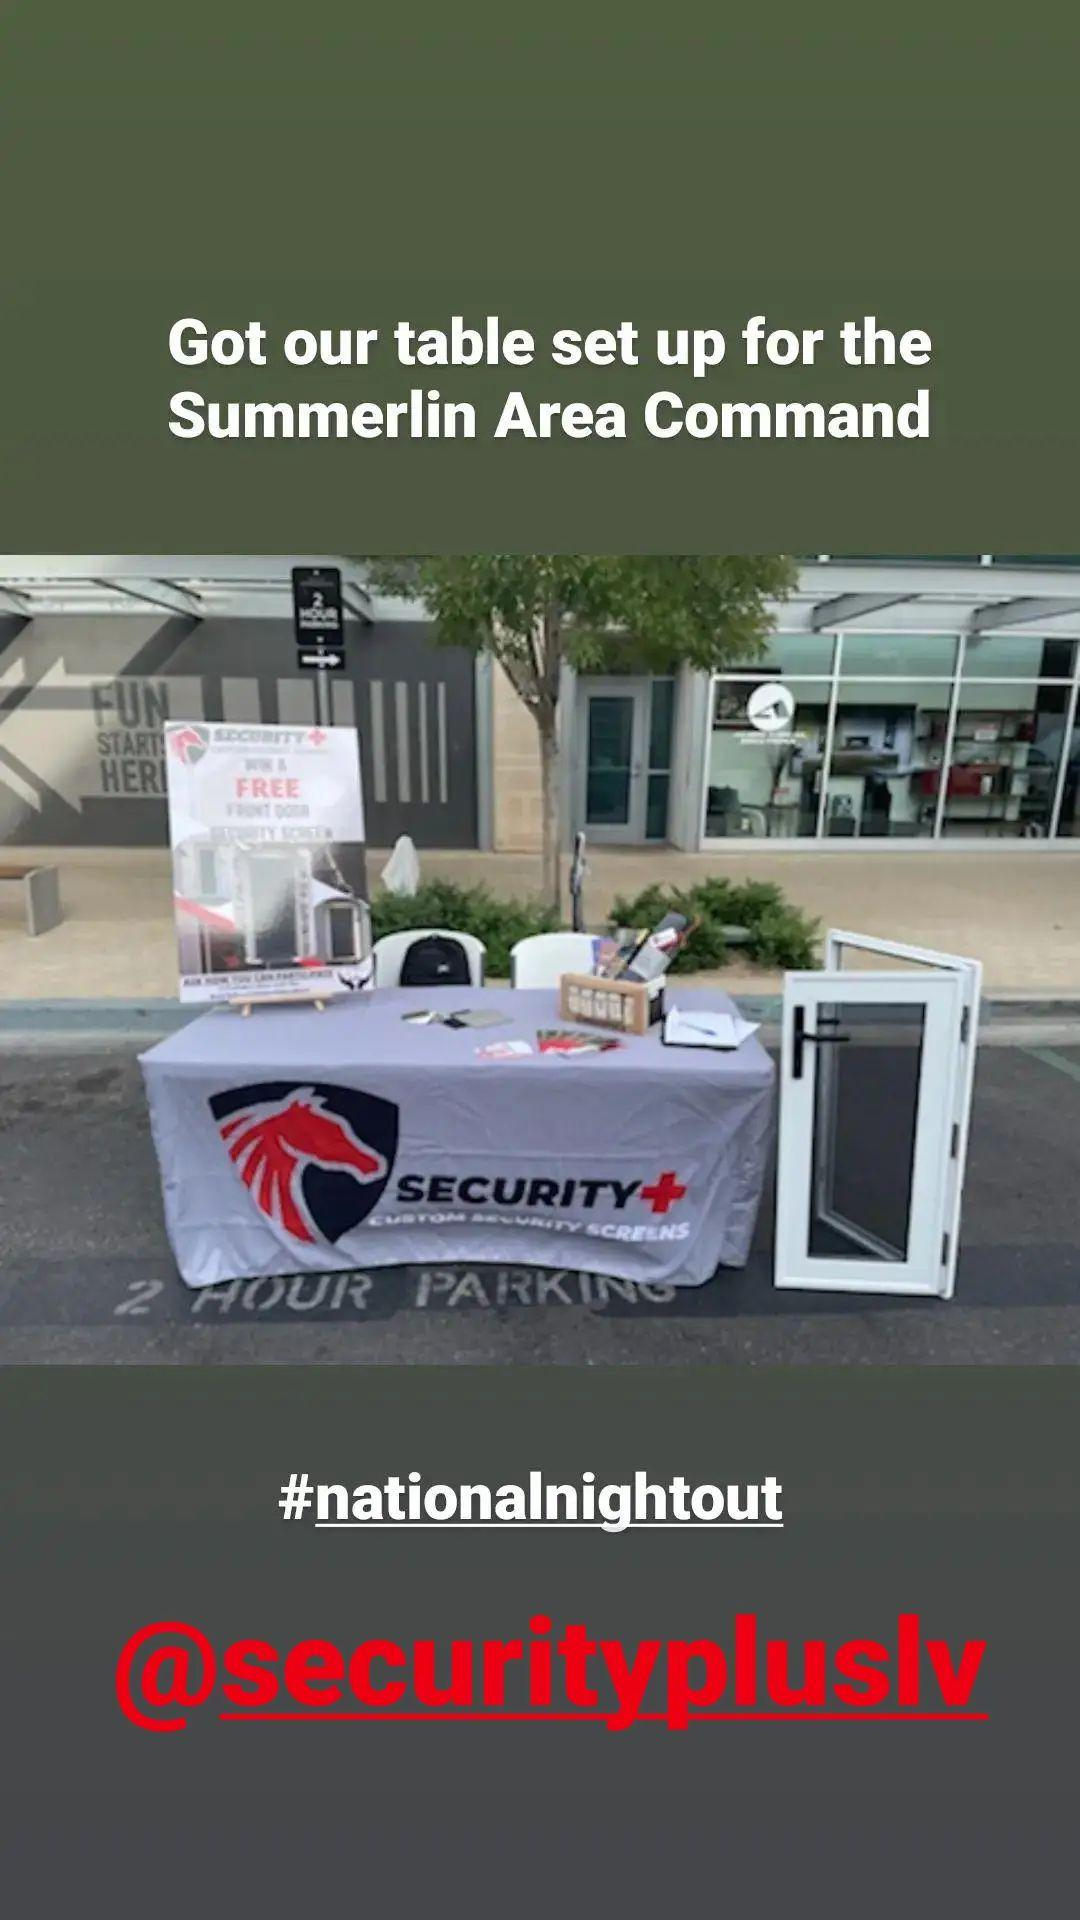 Security Plus' booth at Summerlin Town Center National Night Out Oct 2021